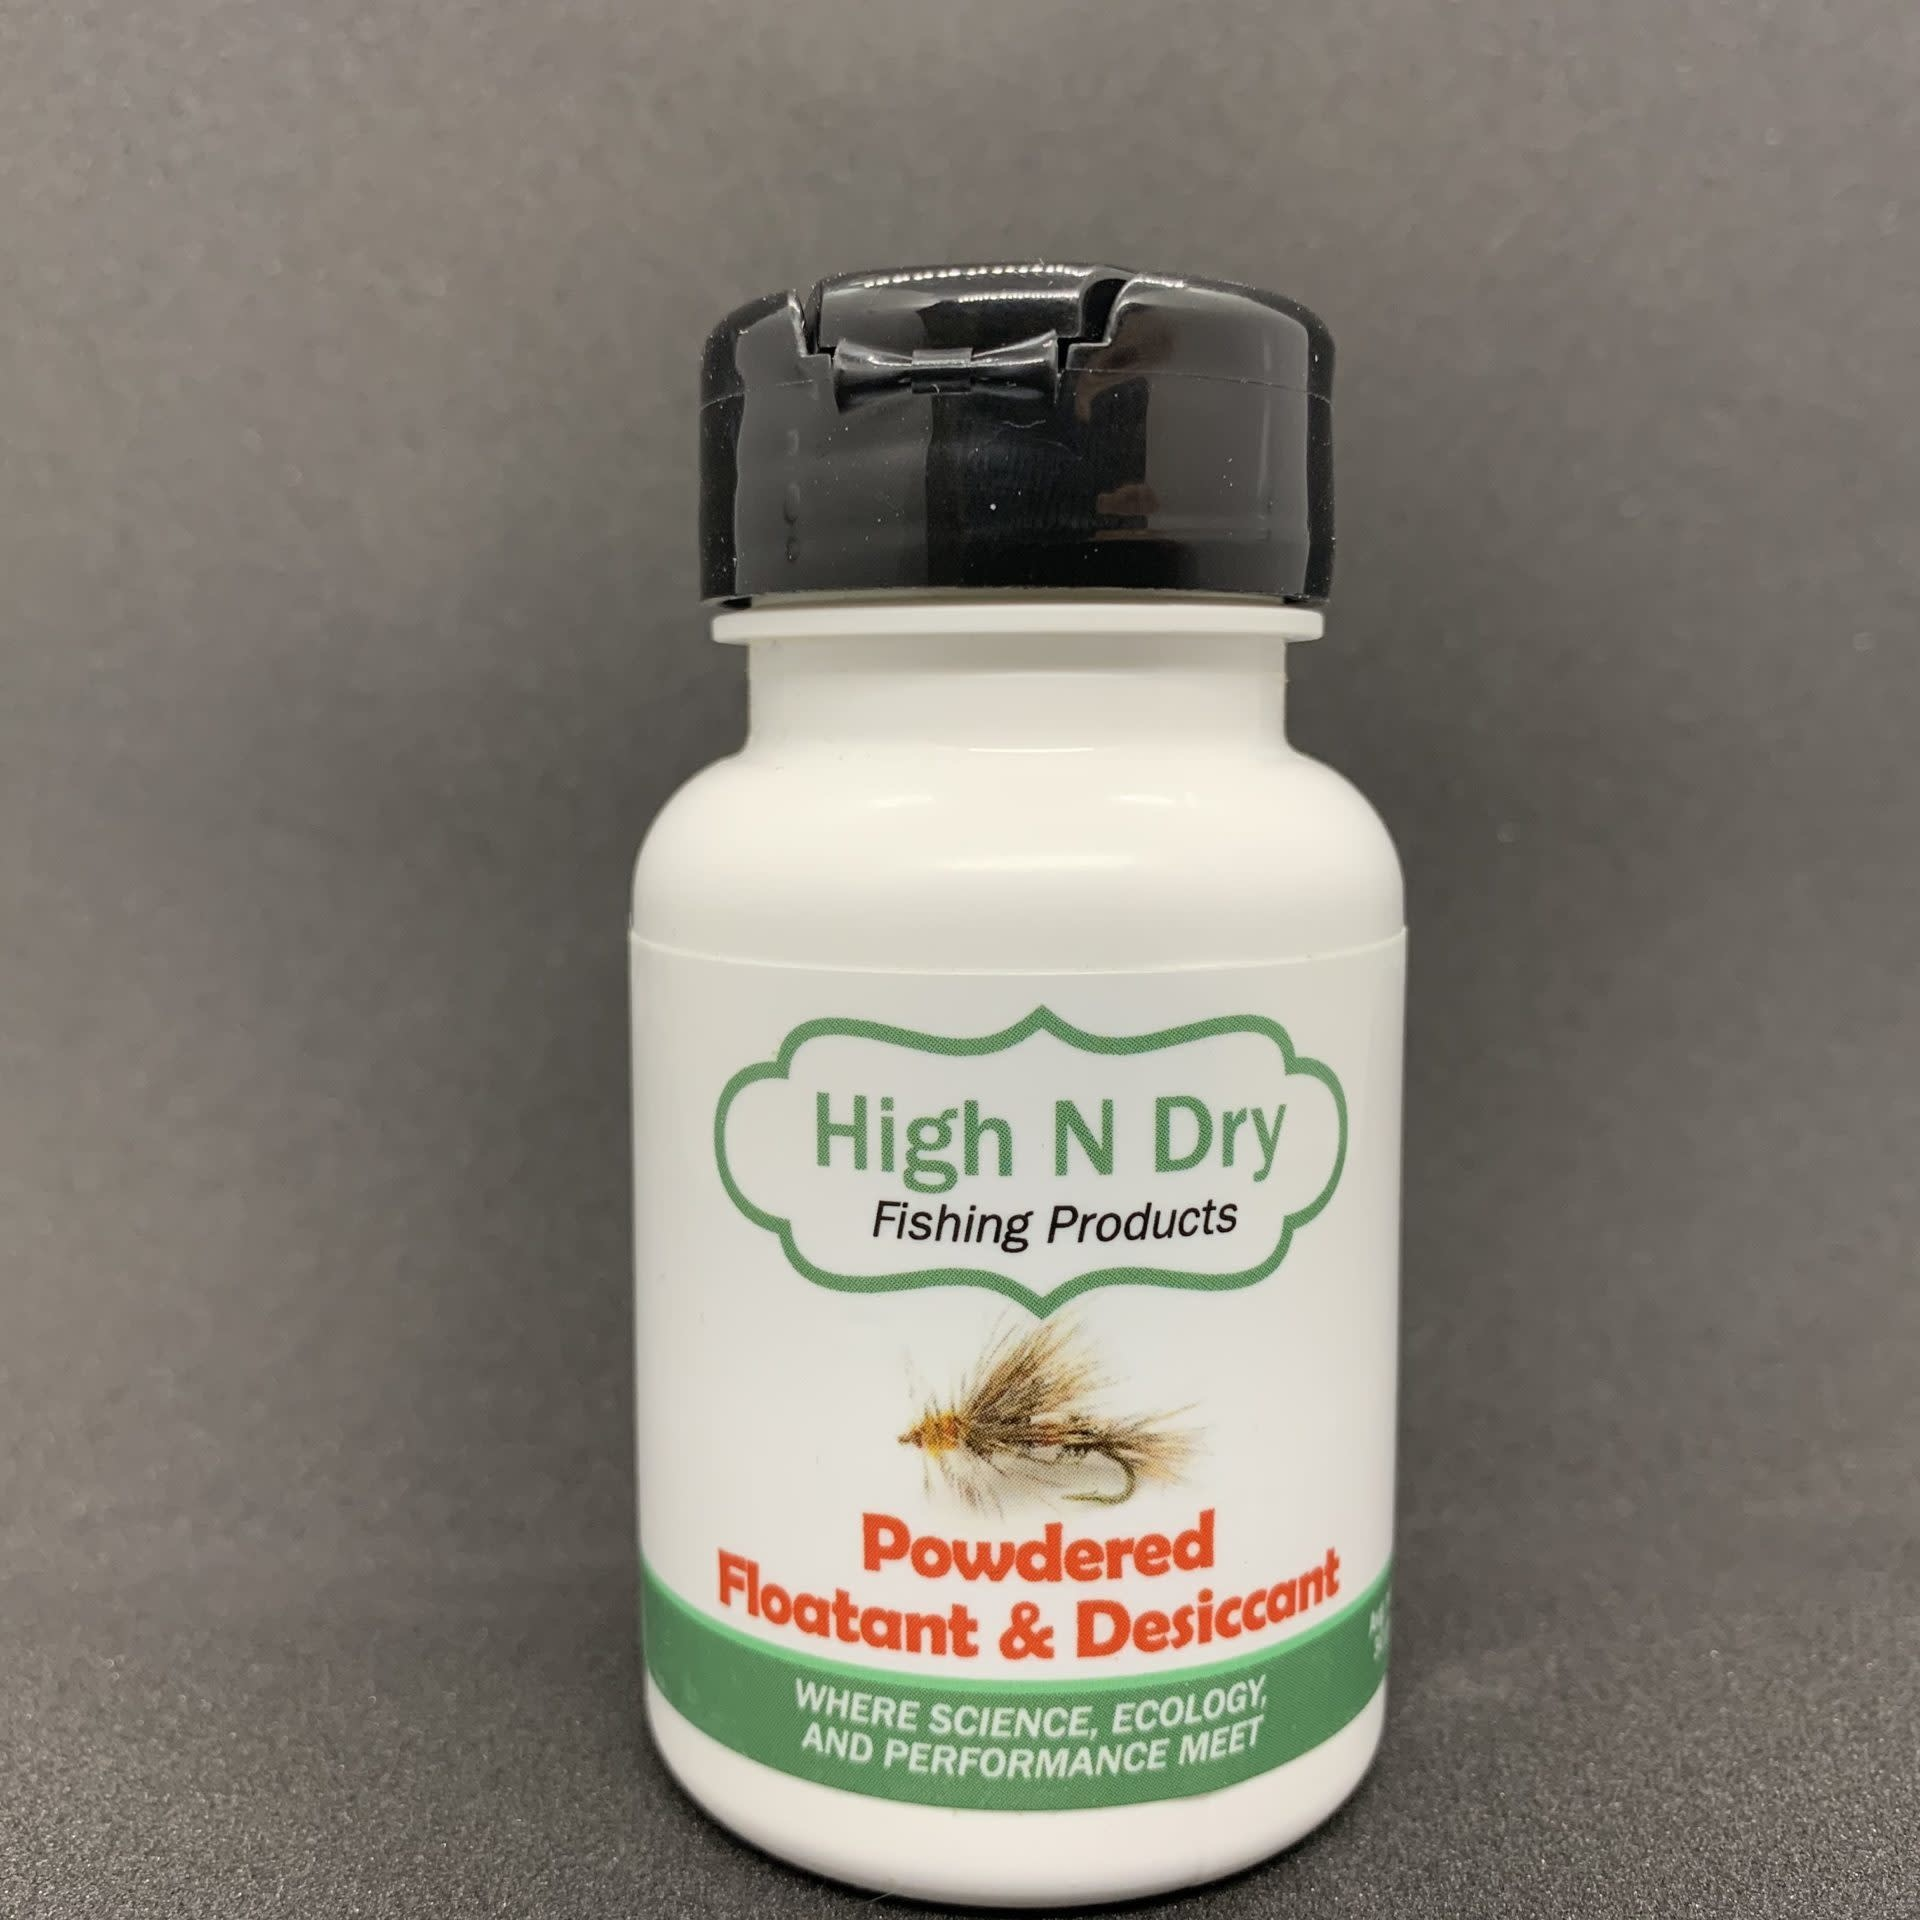 HIGH N DRY FISHING PRODUCTS HIGH N DRY POWDERED FLOATANT & DESICCANT [Single]